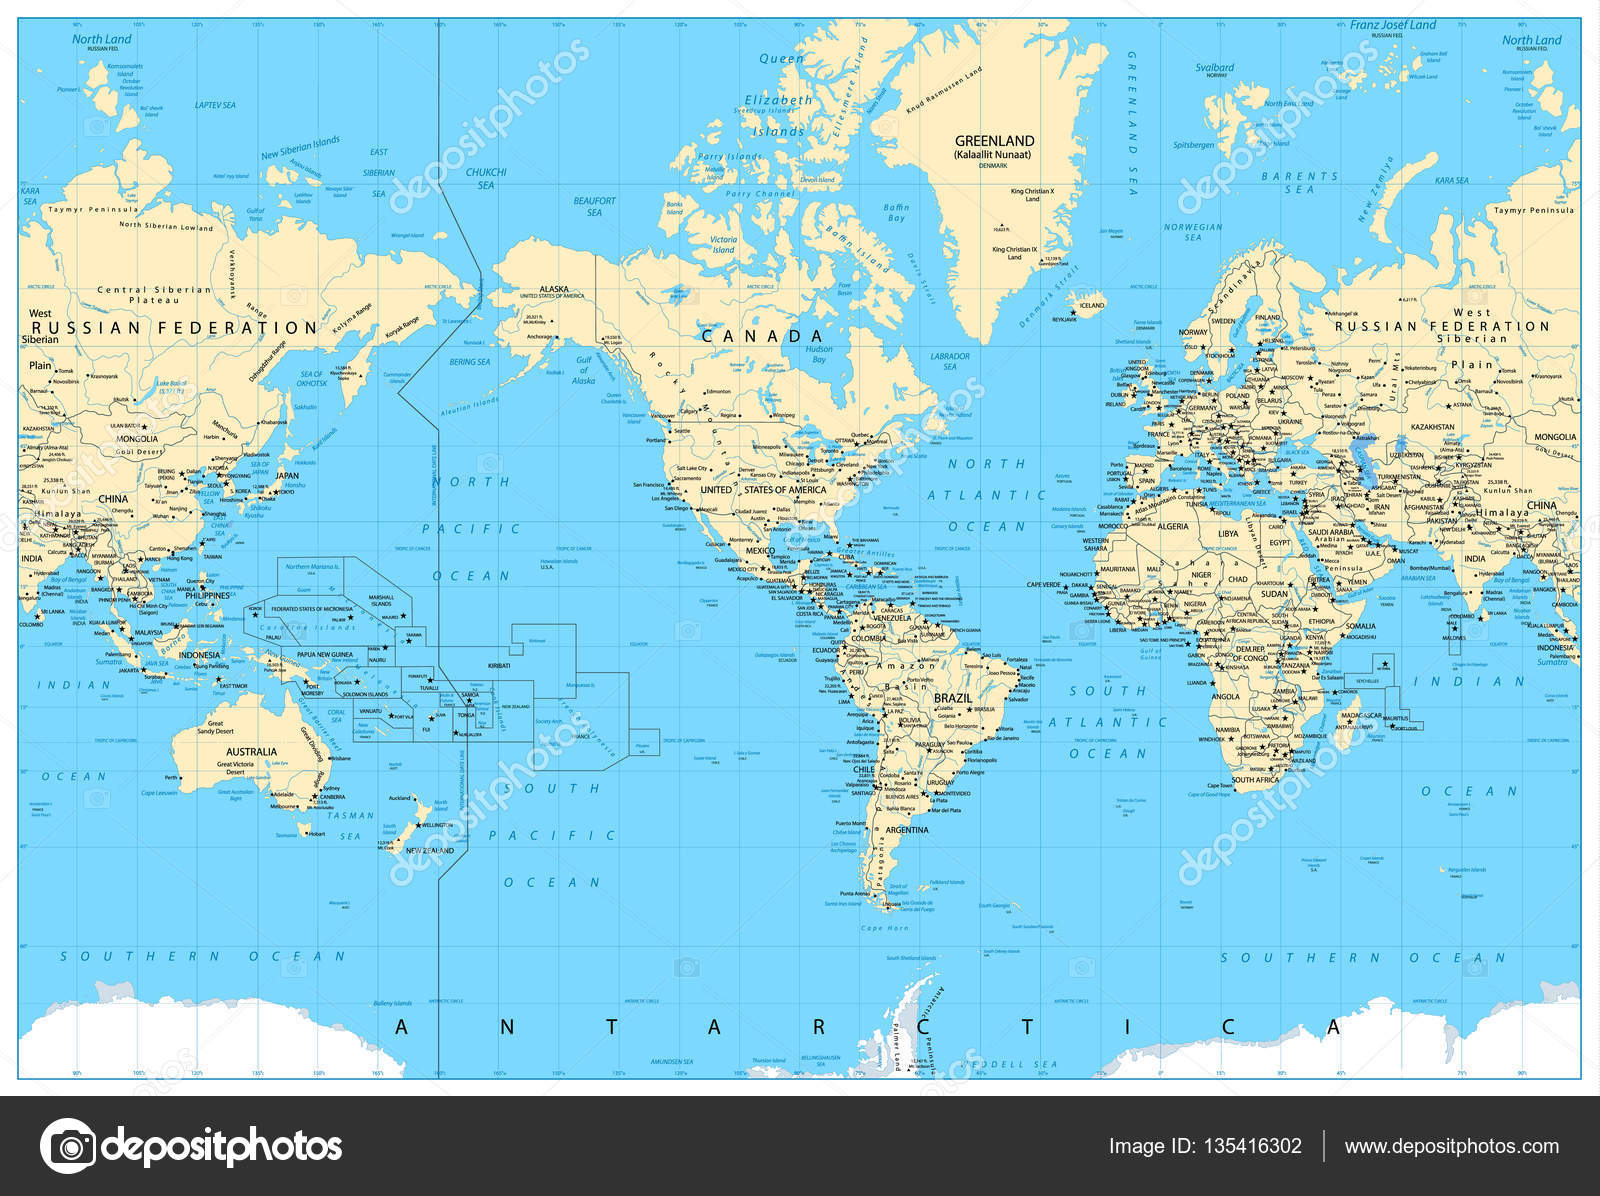 America centered world map stock vector livenart 135416302 america centered world map stock vector gumiabroncs Image collections